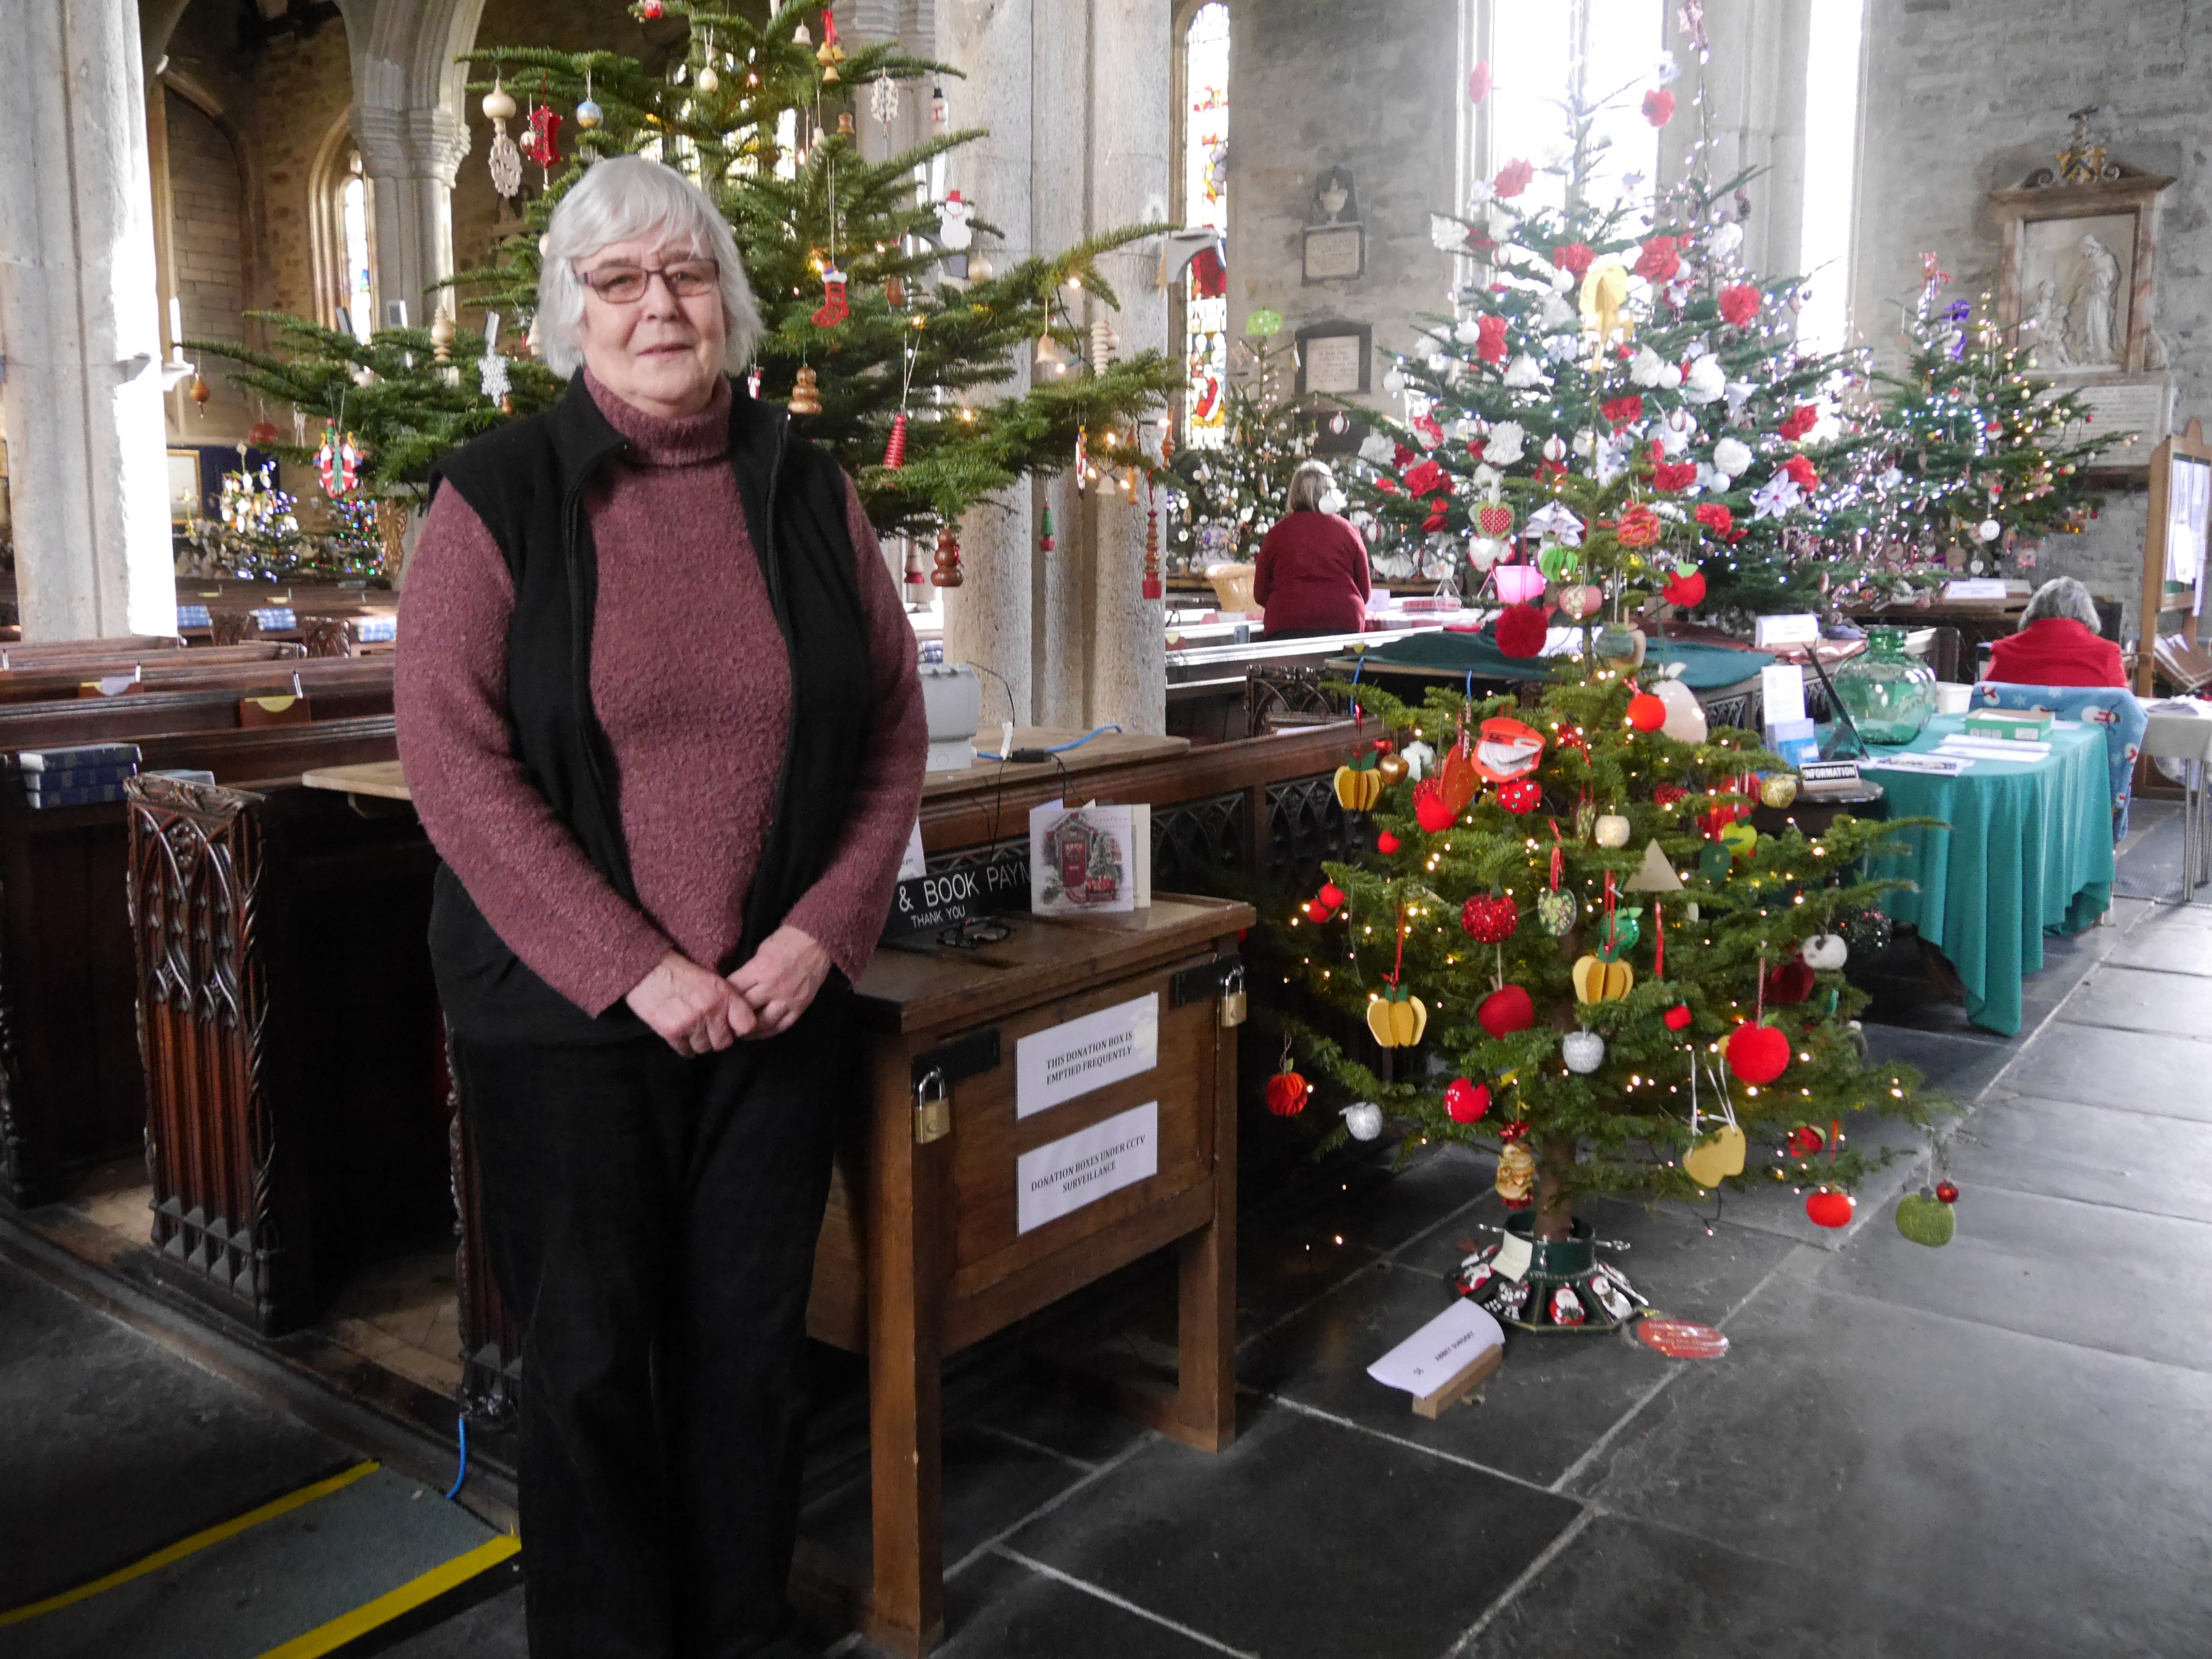 TWO Records Were Broken At Tavistock Parish Churchu0027s Ninth Annual Christmas  Tree Festival U2013 The Number Of Visitors, Estimated At 11,500, And The Amount  ...